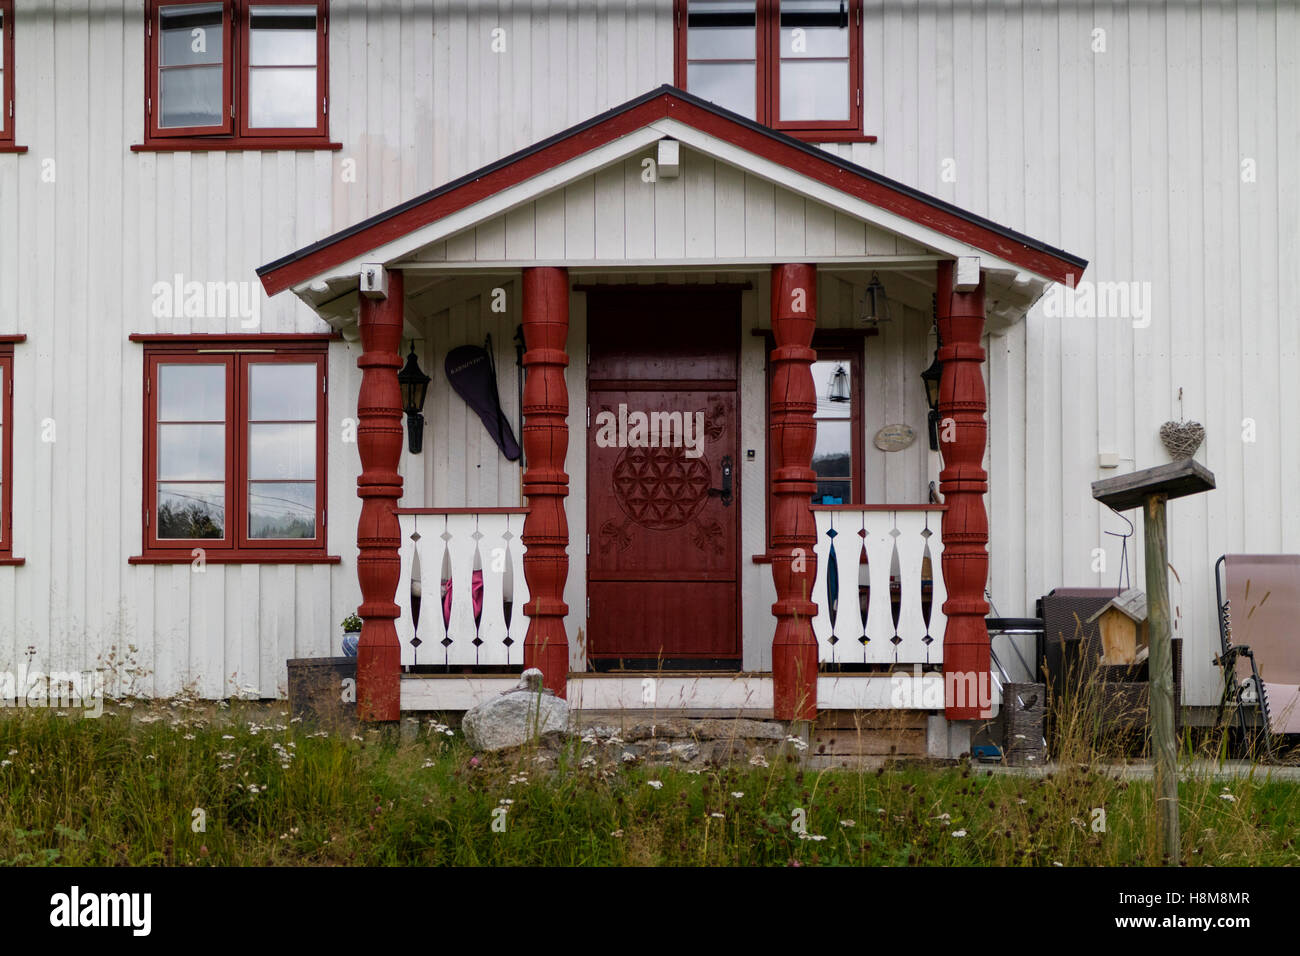 Front porch from a house in Valle,Setesdal, Norway - Stock Image